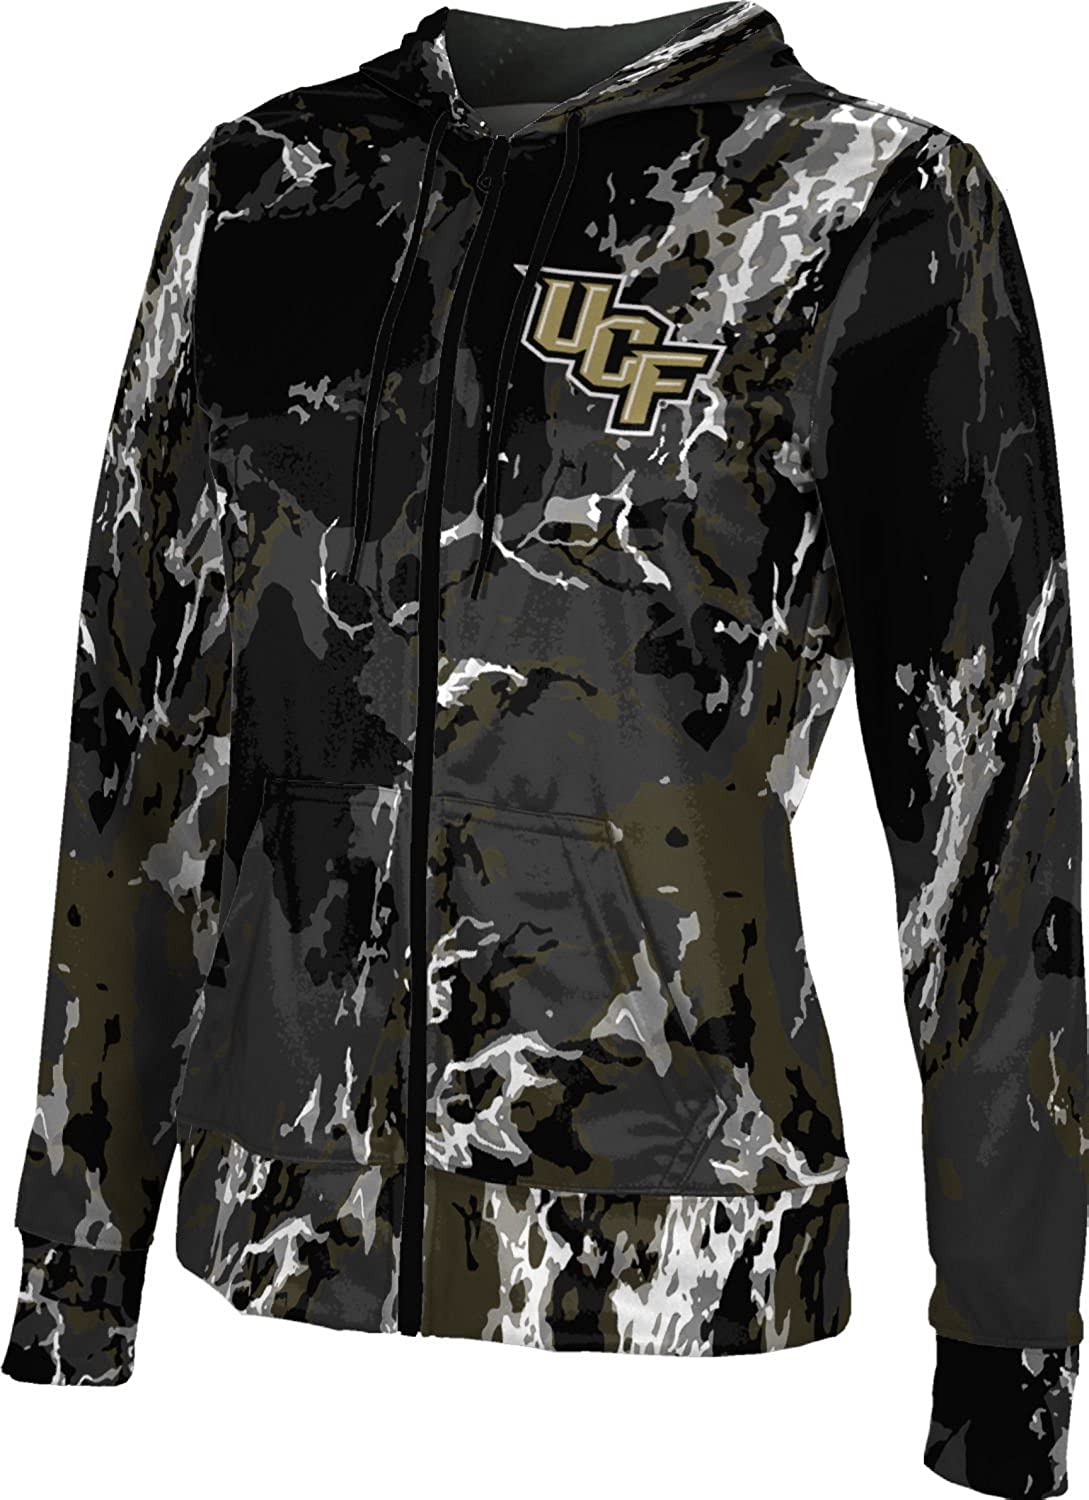 ProSphere Selling rankings University of Central Florida Women's S Hoodie Zipper Lowest price challenge